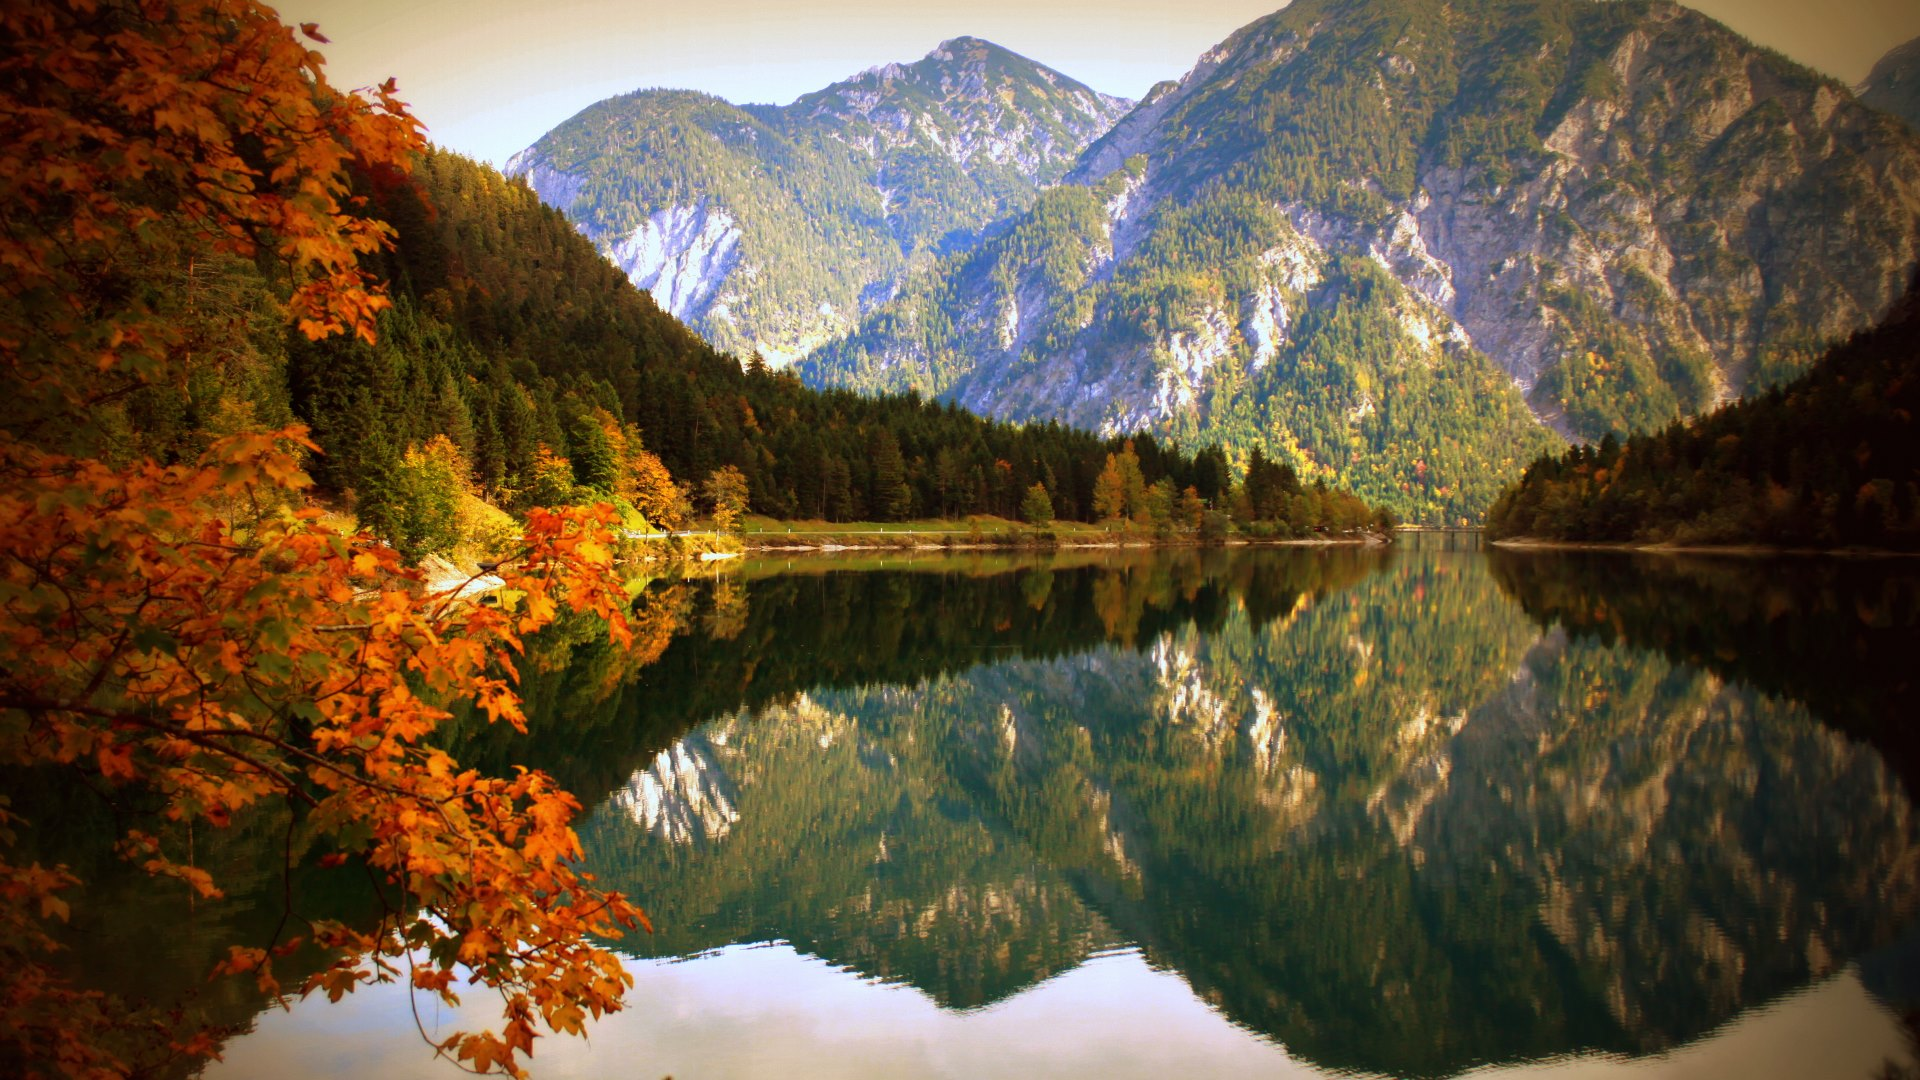 Wallpaper: Nature Lake and Mountains in Autumn